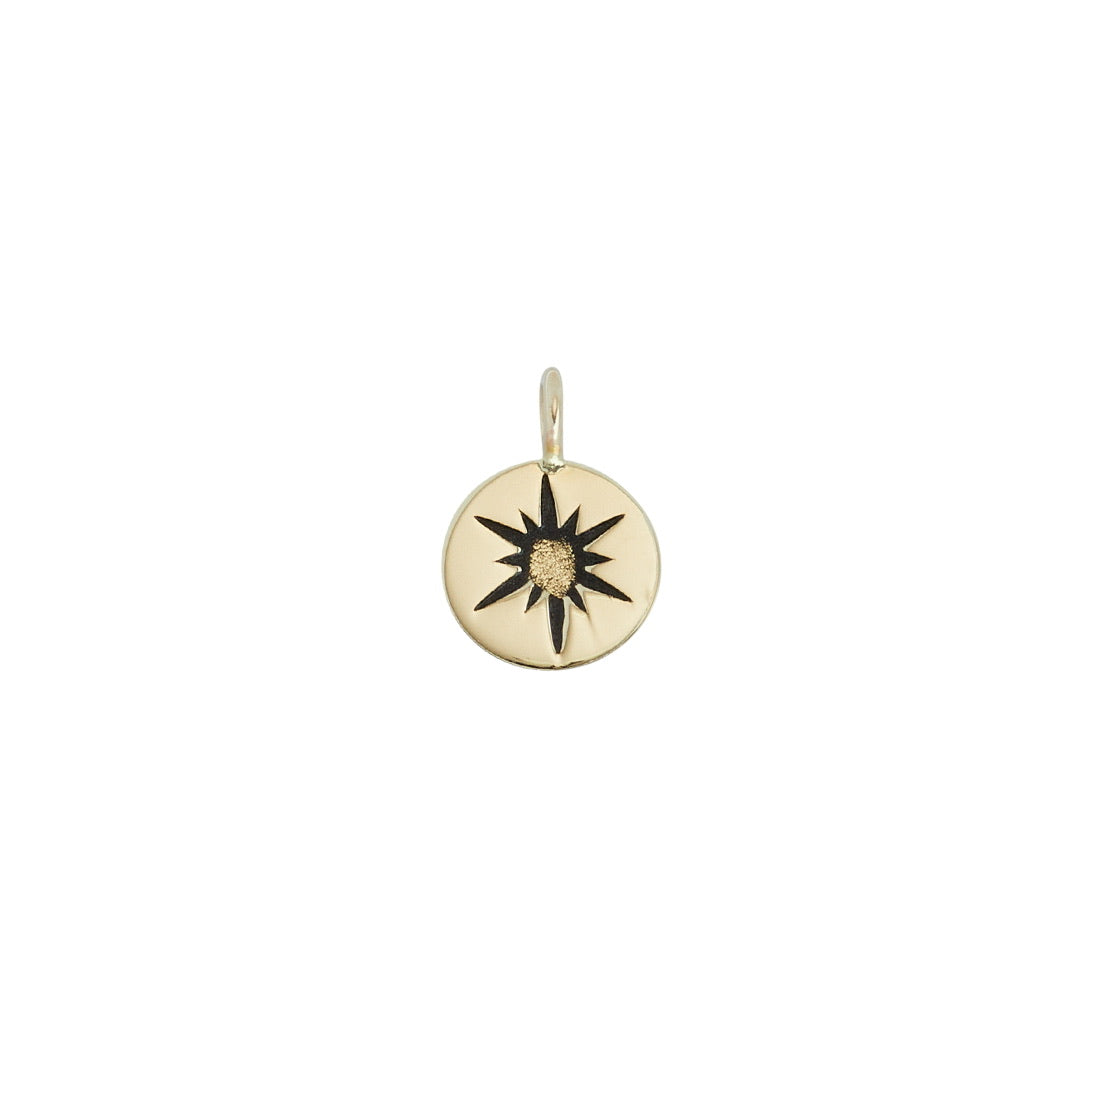 North Star mini coin necklace